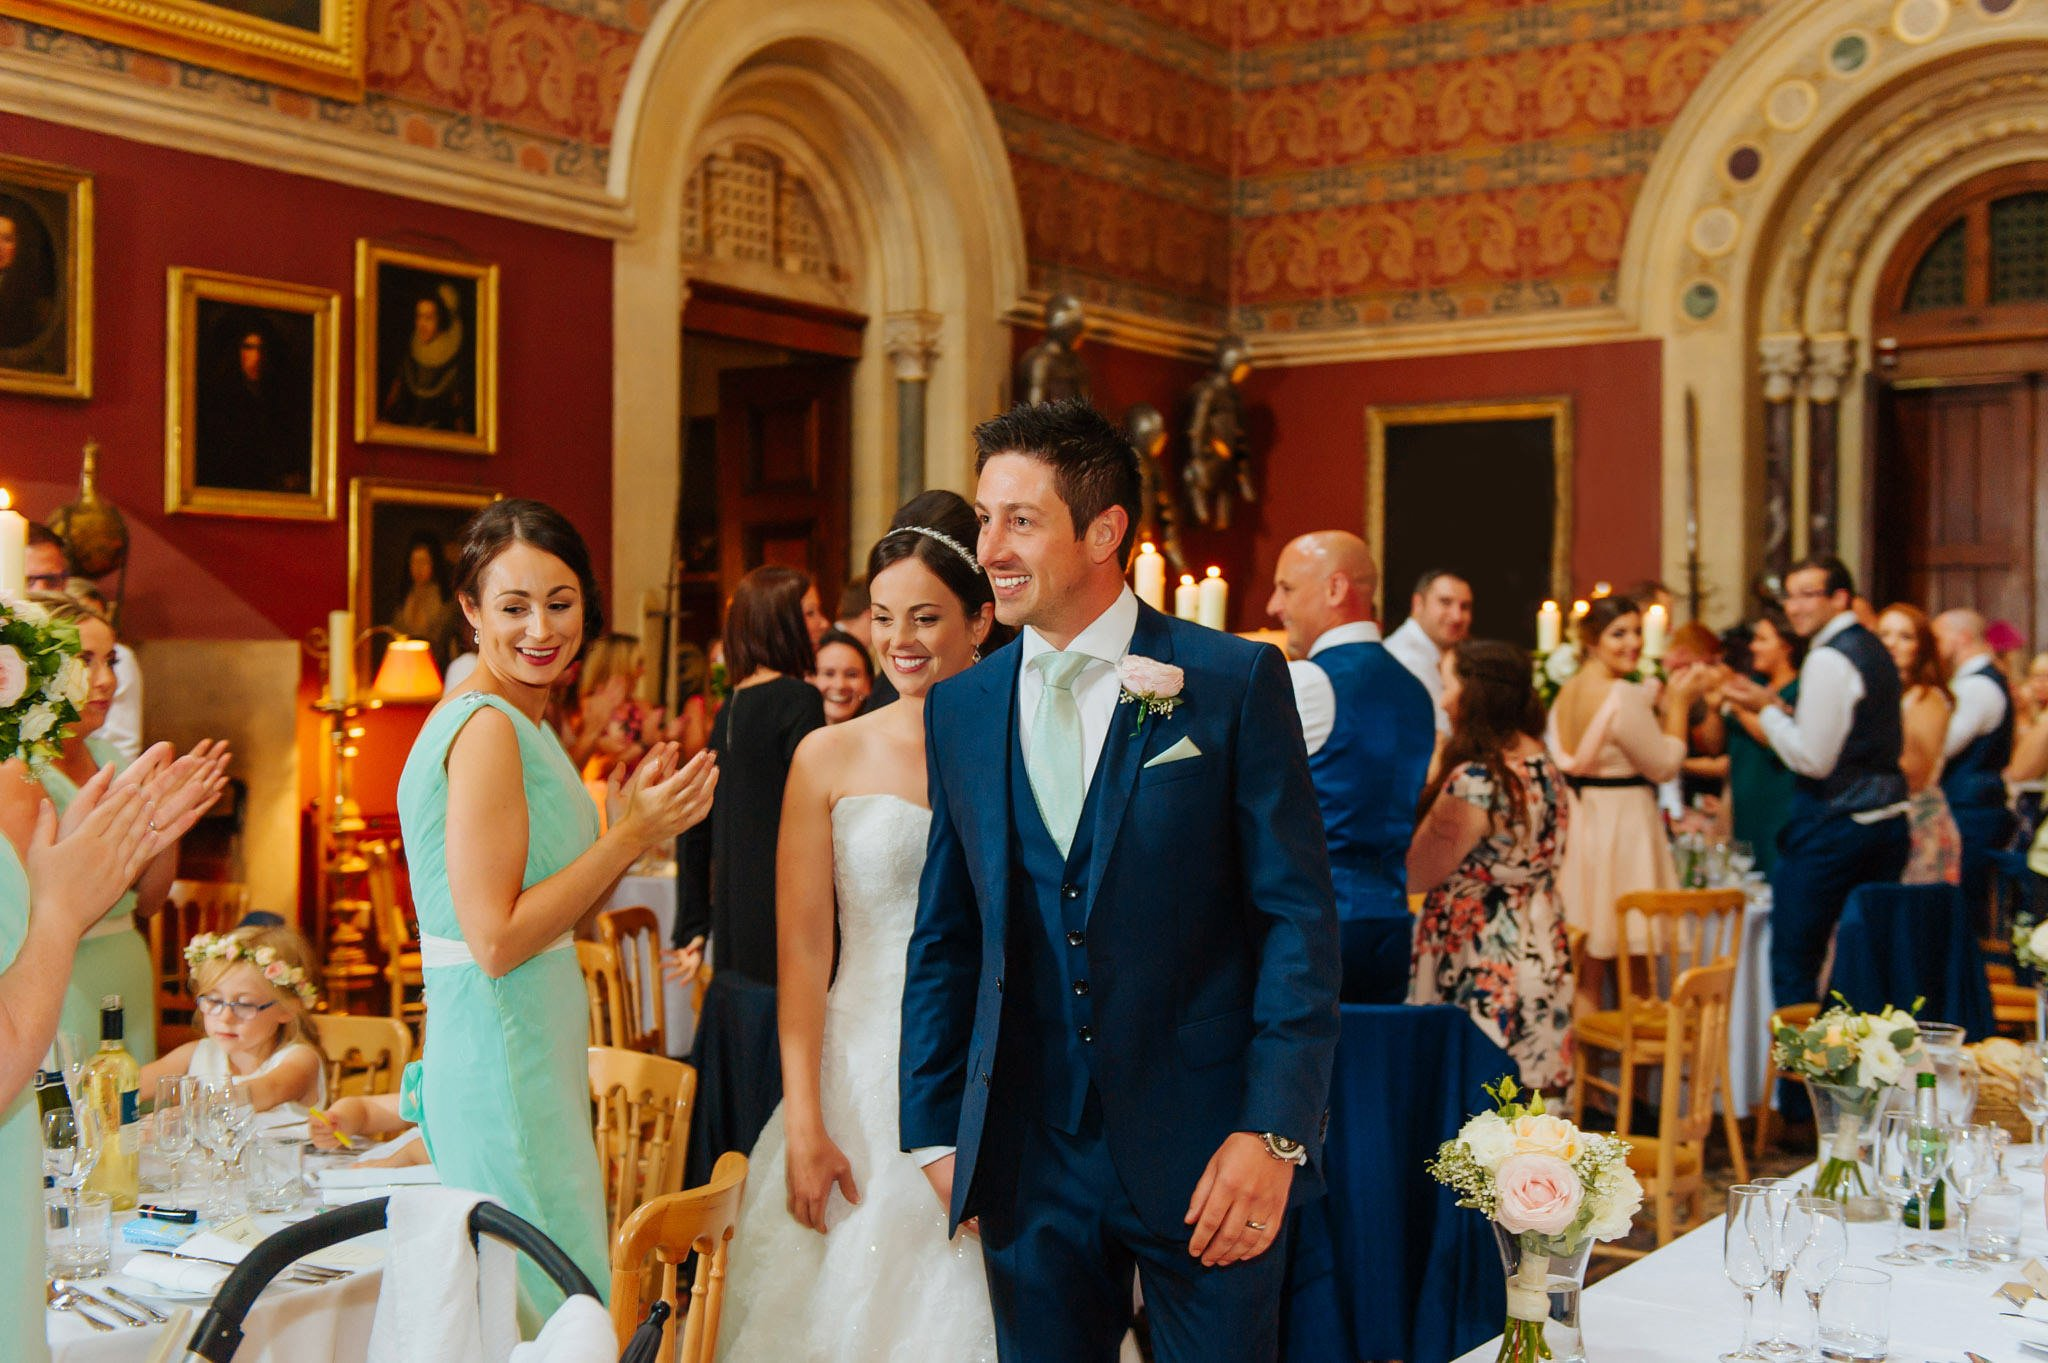 eastnor castle wedding pictures 150 - Eastnor Castle wedding photographer Herefordshire, West Midlands - Sarah + Dean